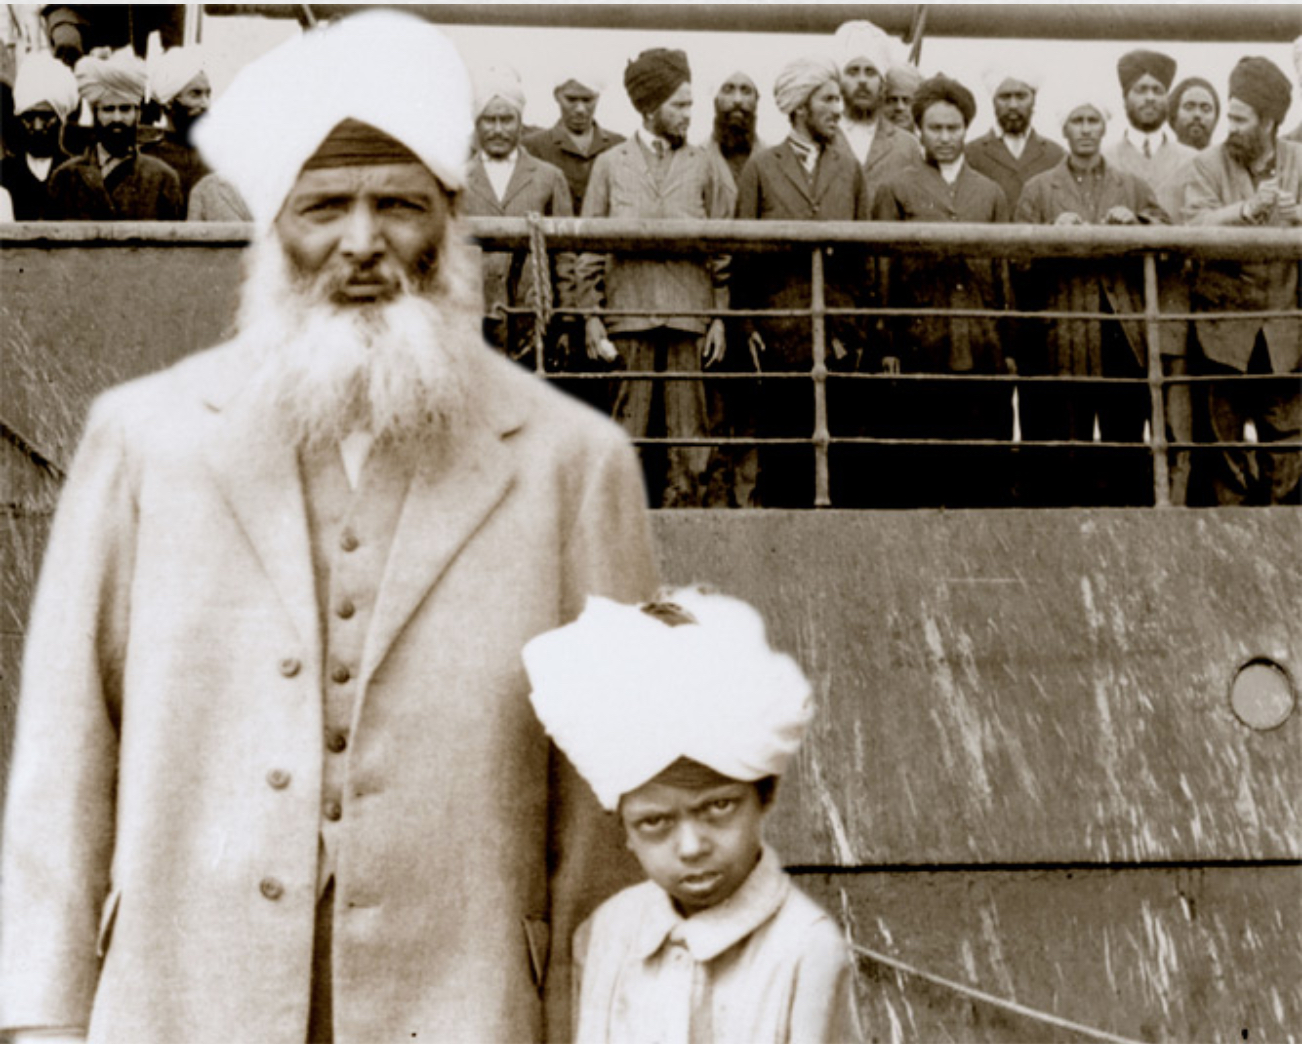 Film still for Continuous Journey showing an old photo of one adult and one young child